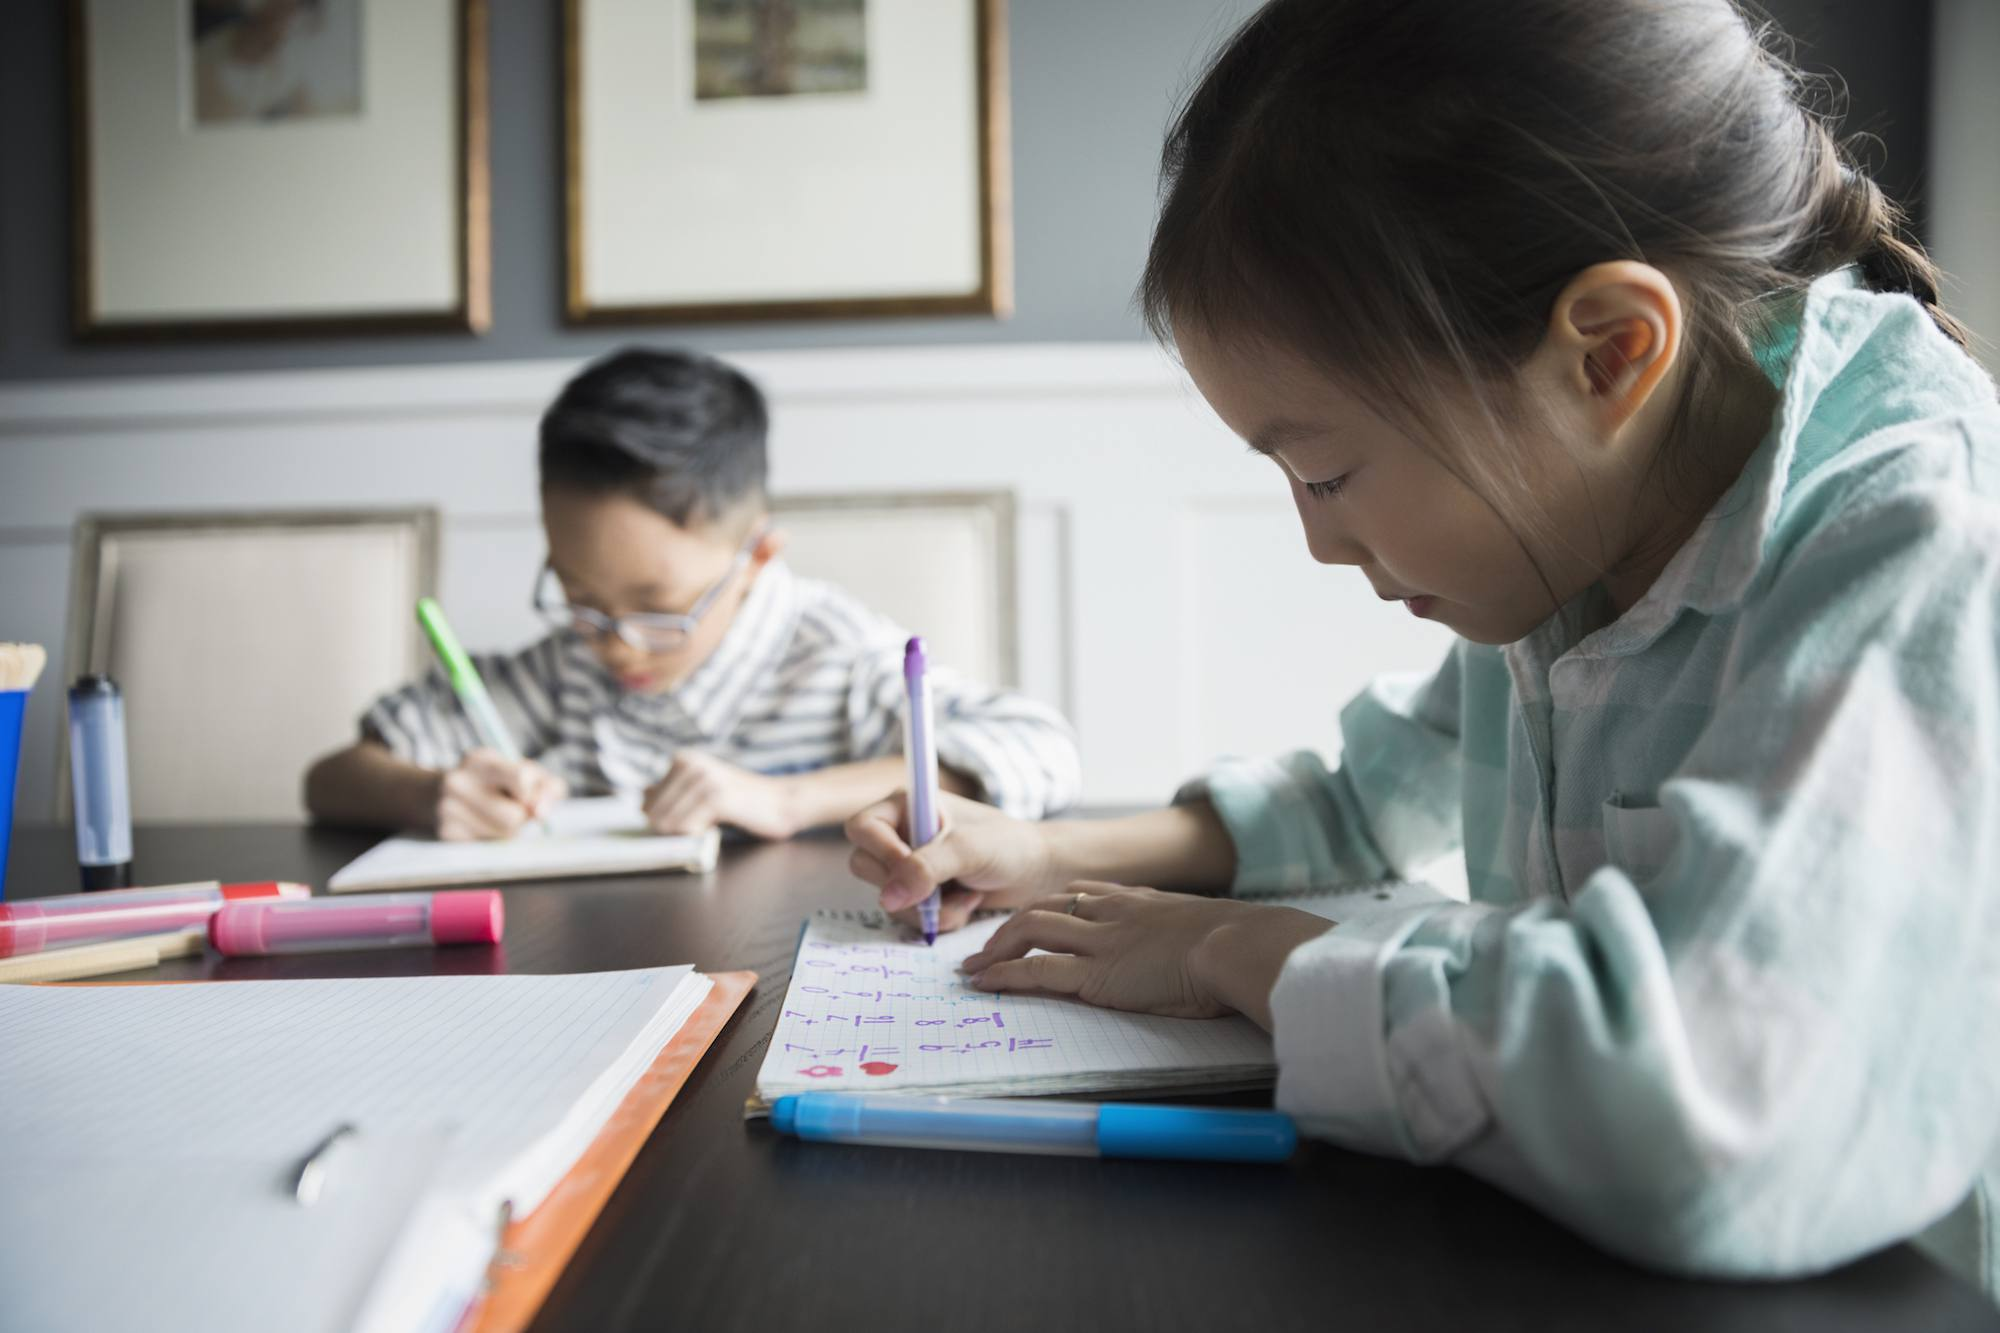 Brother and sister doing math homework with markers at table